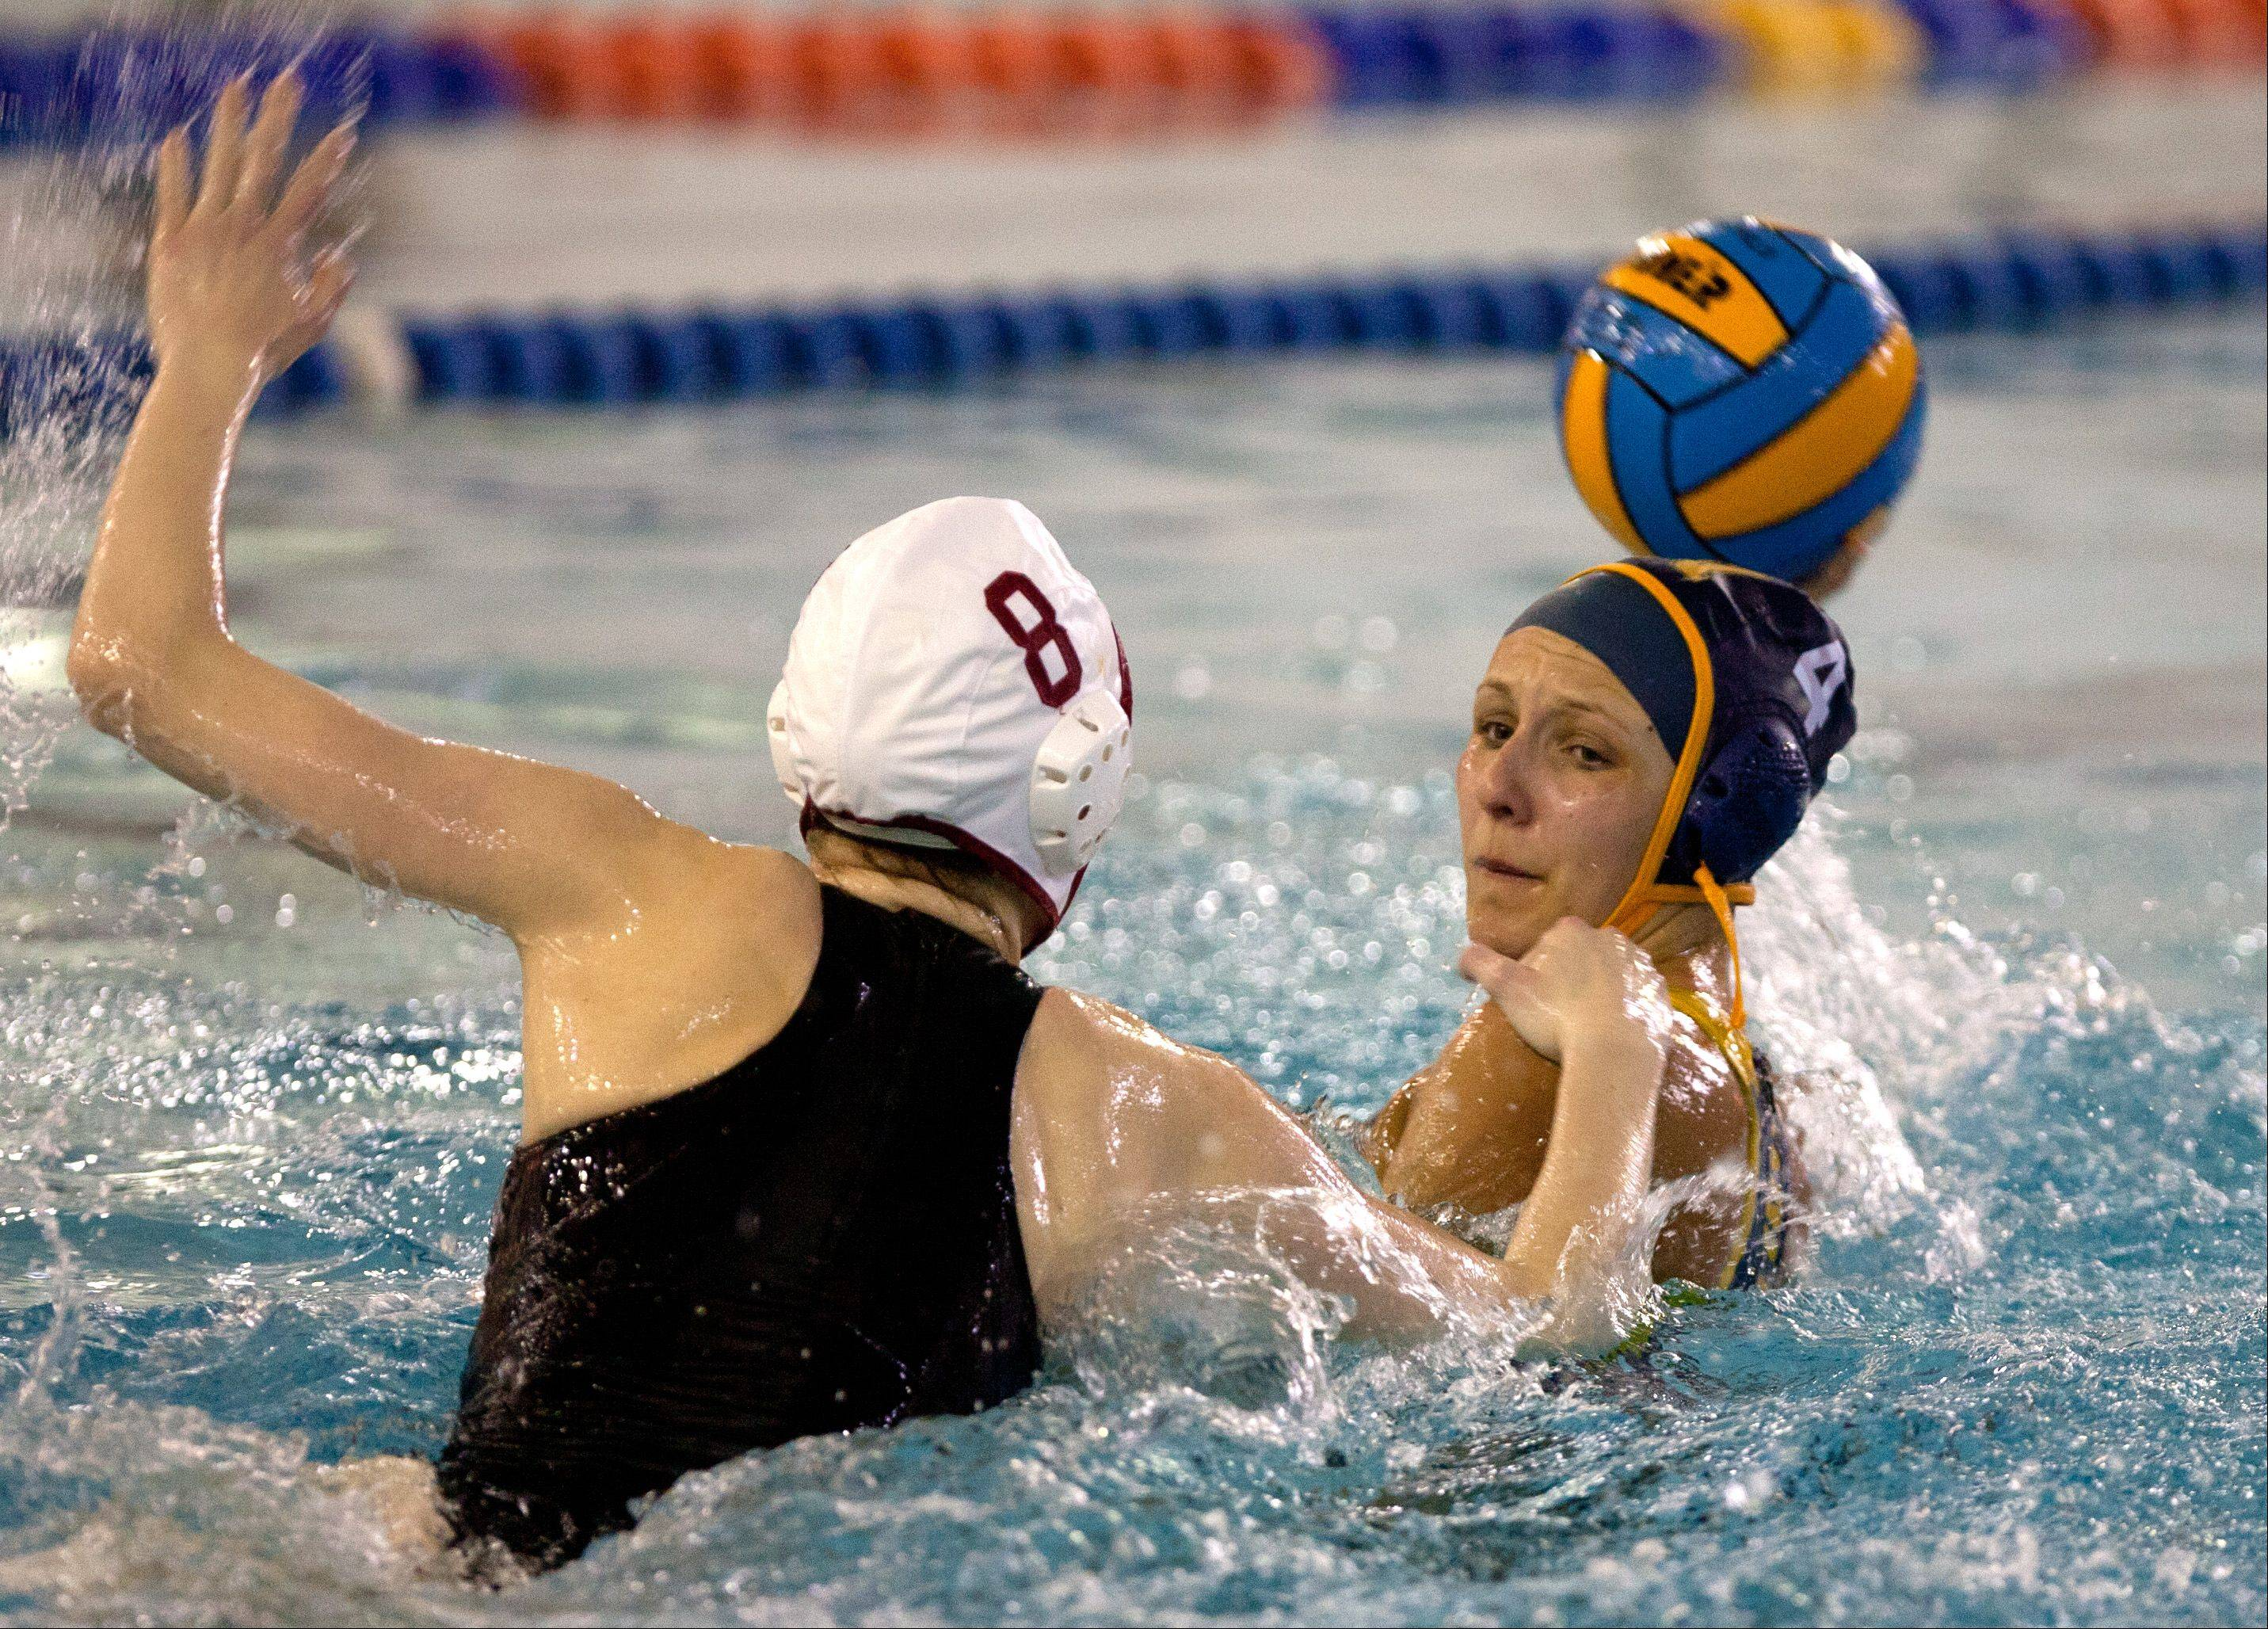 Naperville Central's Erin Reagan, left, defends Neuqua Valley's Morgan Miller, right, during the Naperville Quint girls varsity water polo tournament.